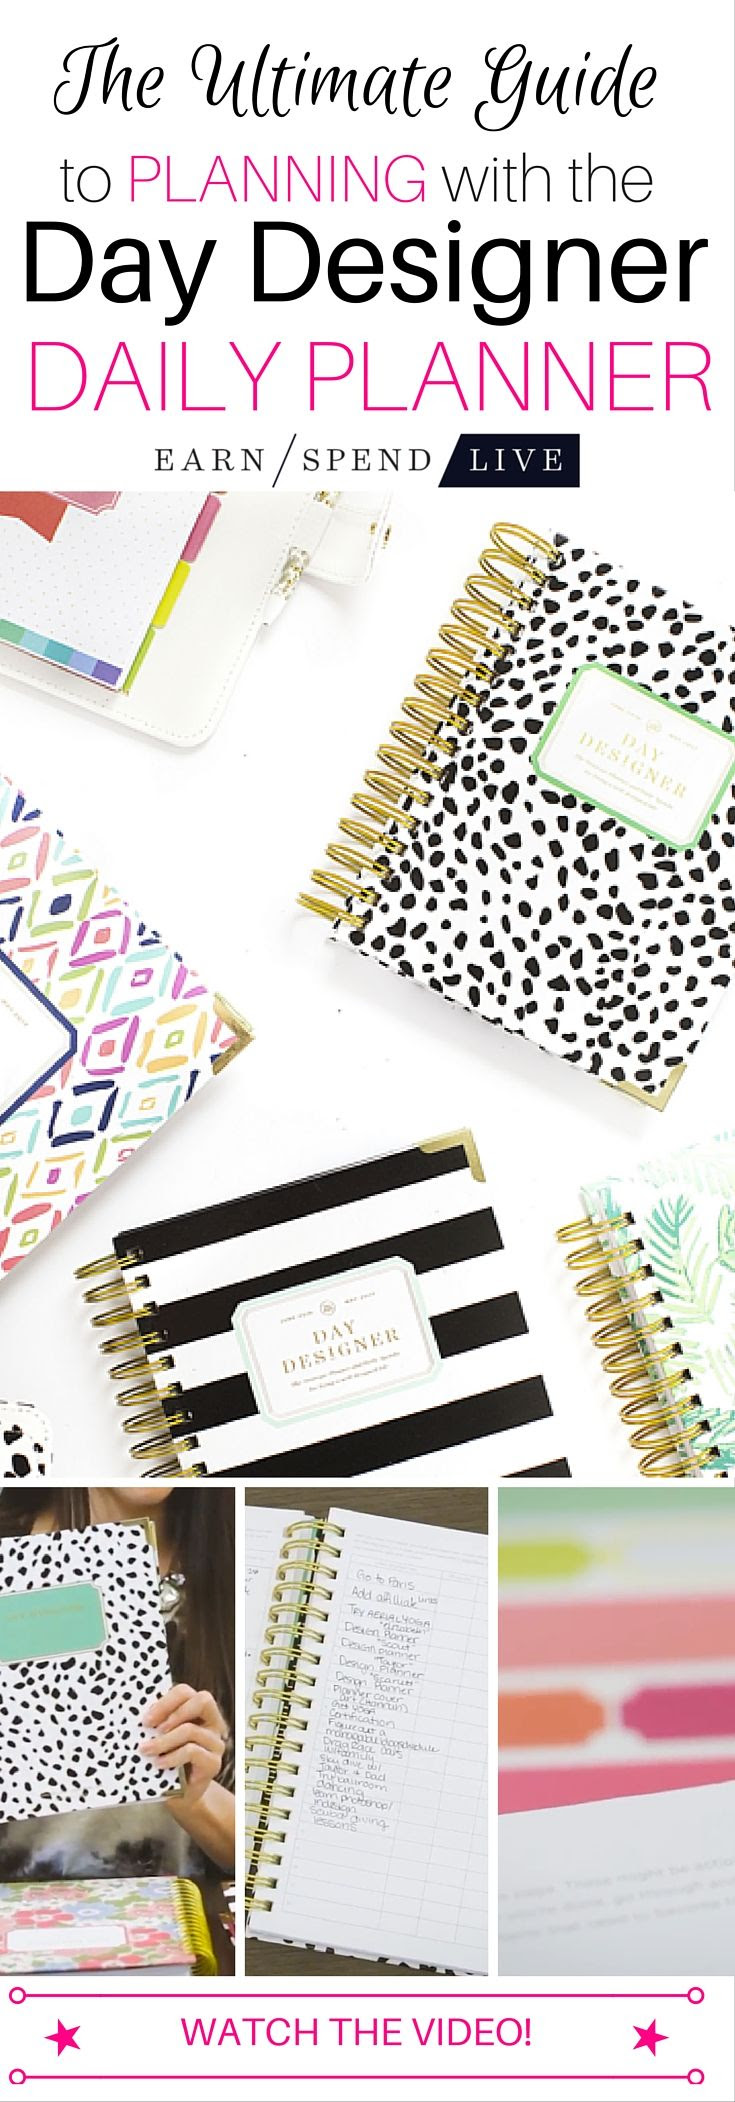 1000+ ideas about Day Designer on Pinterest | Daily planners ...